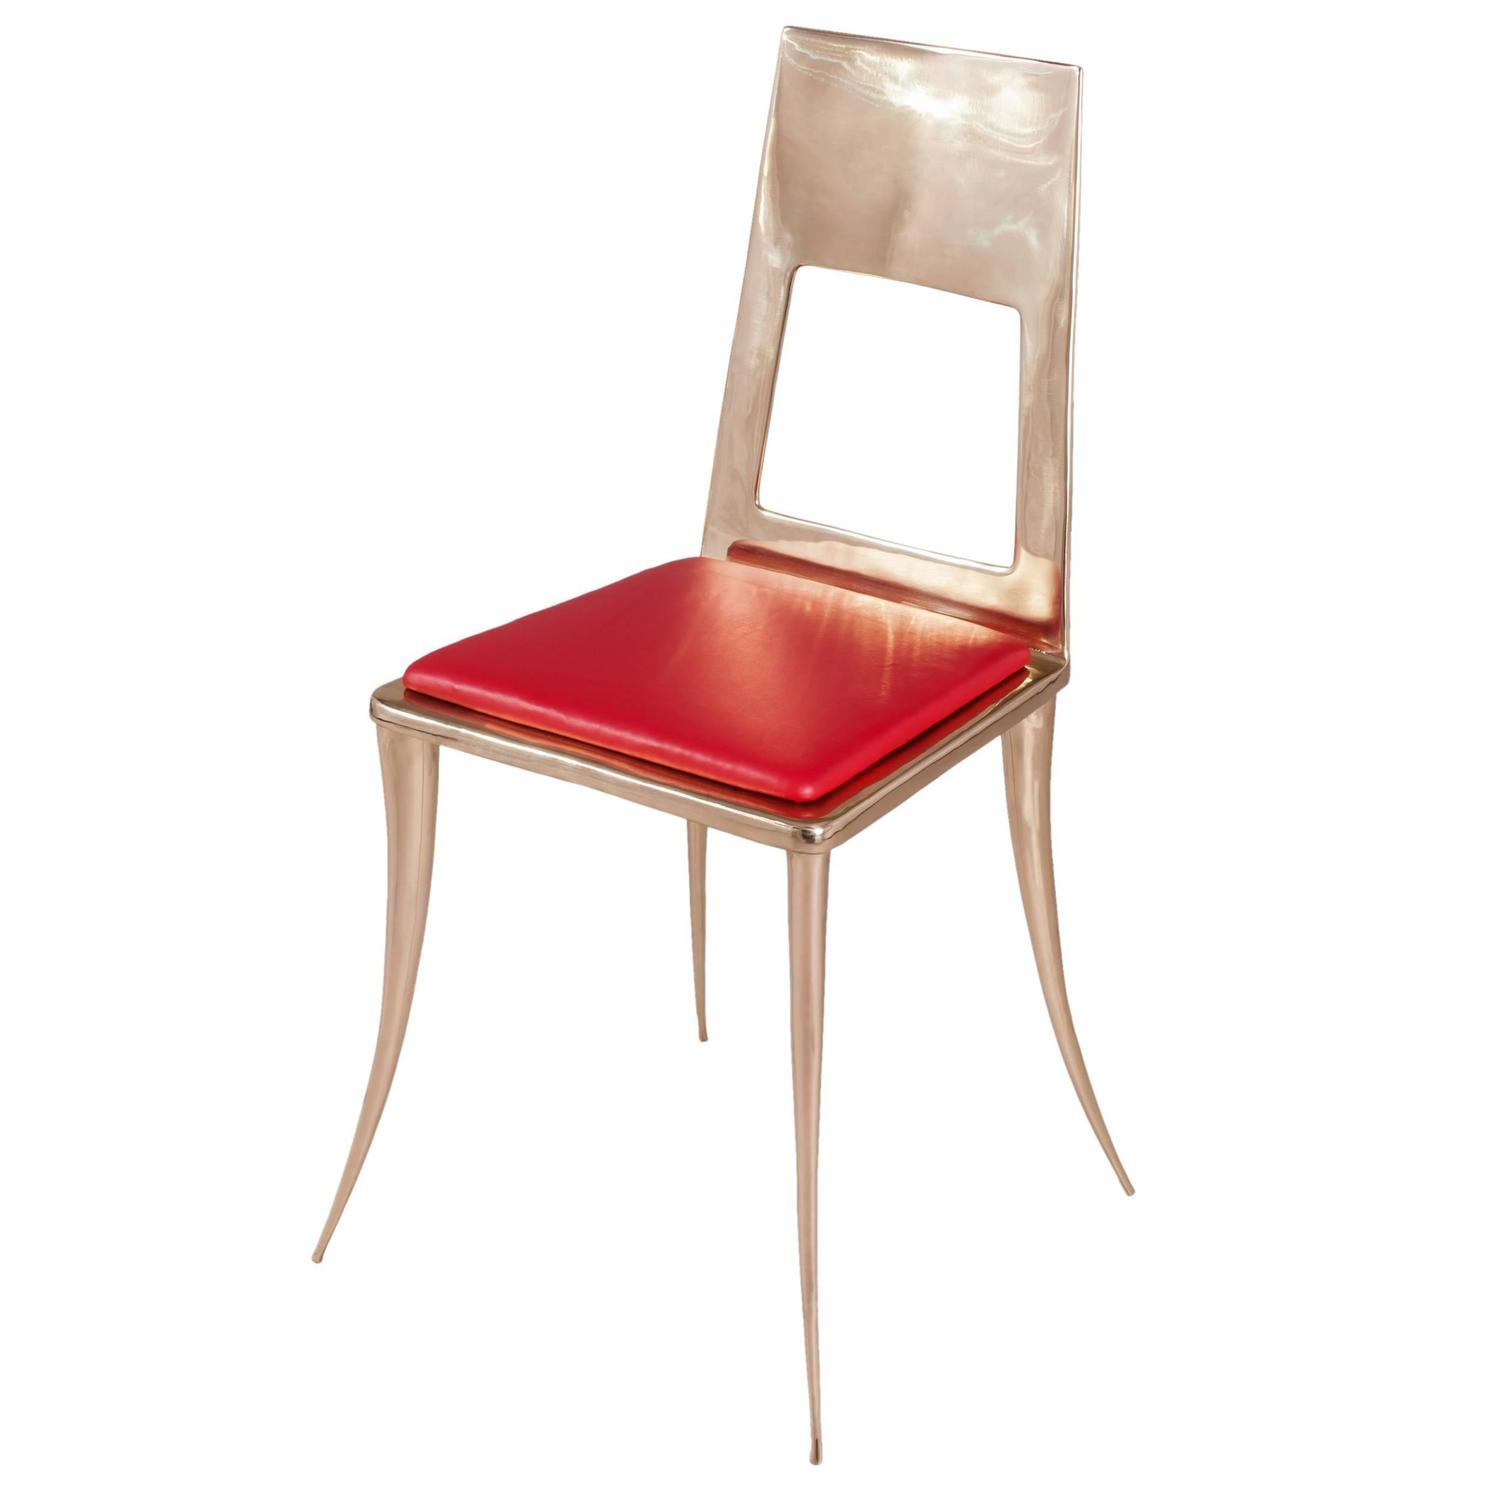 Bronze Klismos Chair by Nick King For Sale at 1stdibs